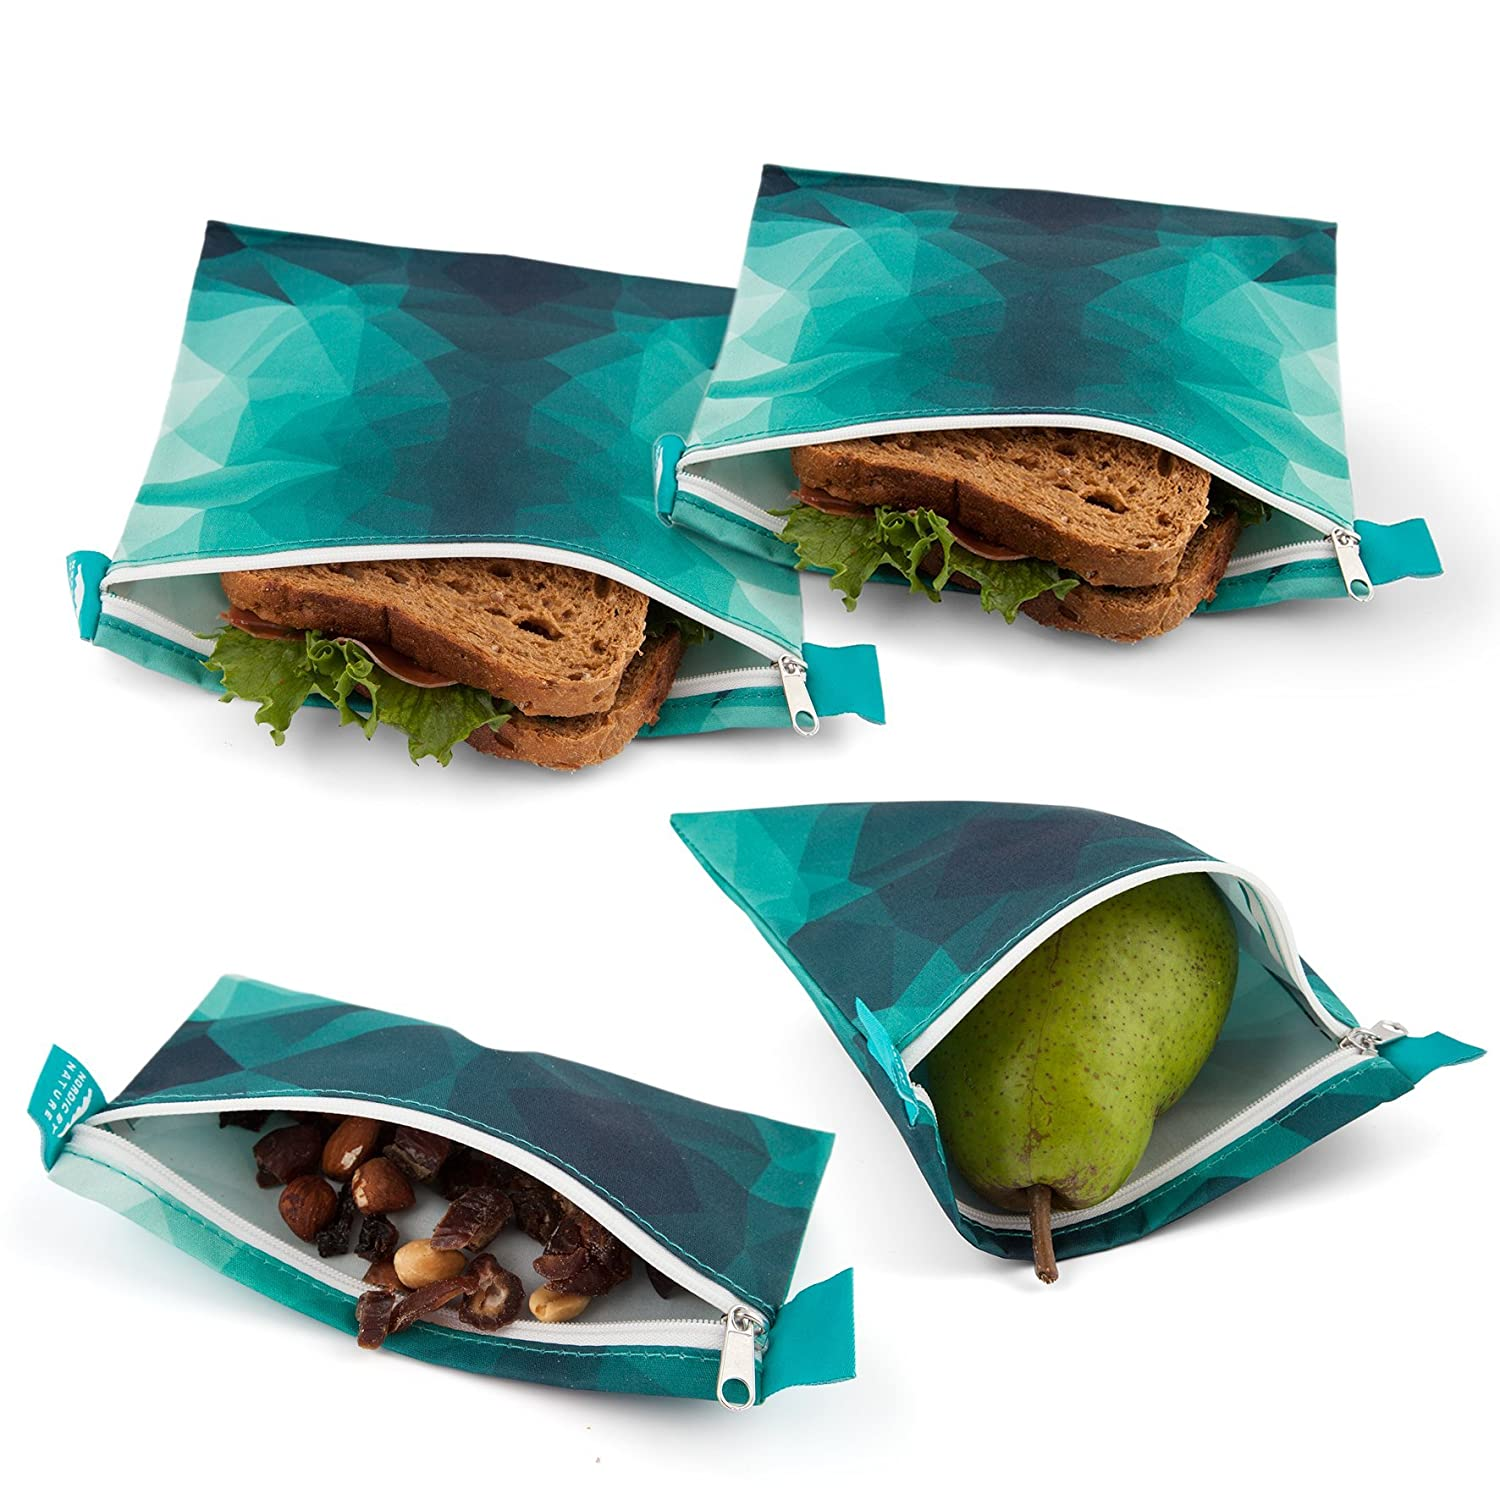 (Turquoise Waters) - Nordic By Nature Premium Turquoise Sandwich & Snack Bags Designer Set of 4 Pack Resealable, Reusable and Eco Friendly Dishwasher Safe Lunch Bags Functional Easy Open Zipper Great Value Bags B075B7FM3W Turquoise Waters Turquoise Waters